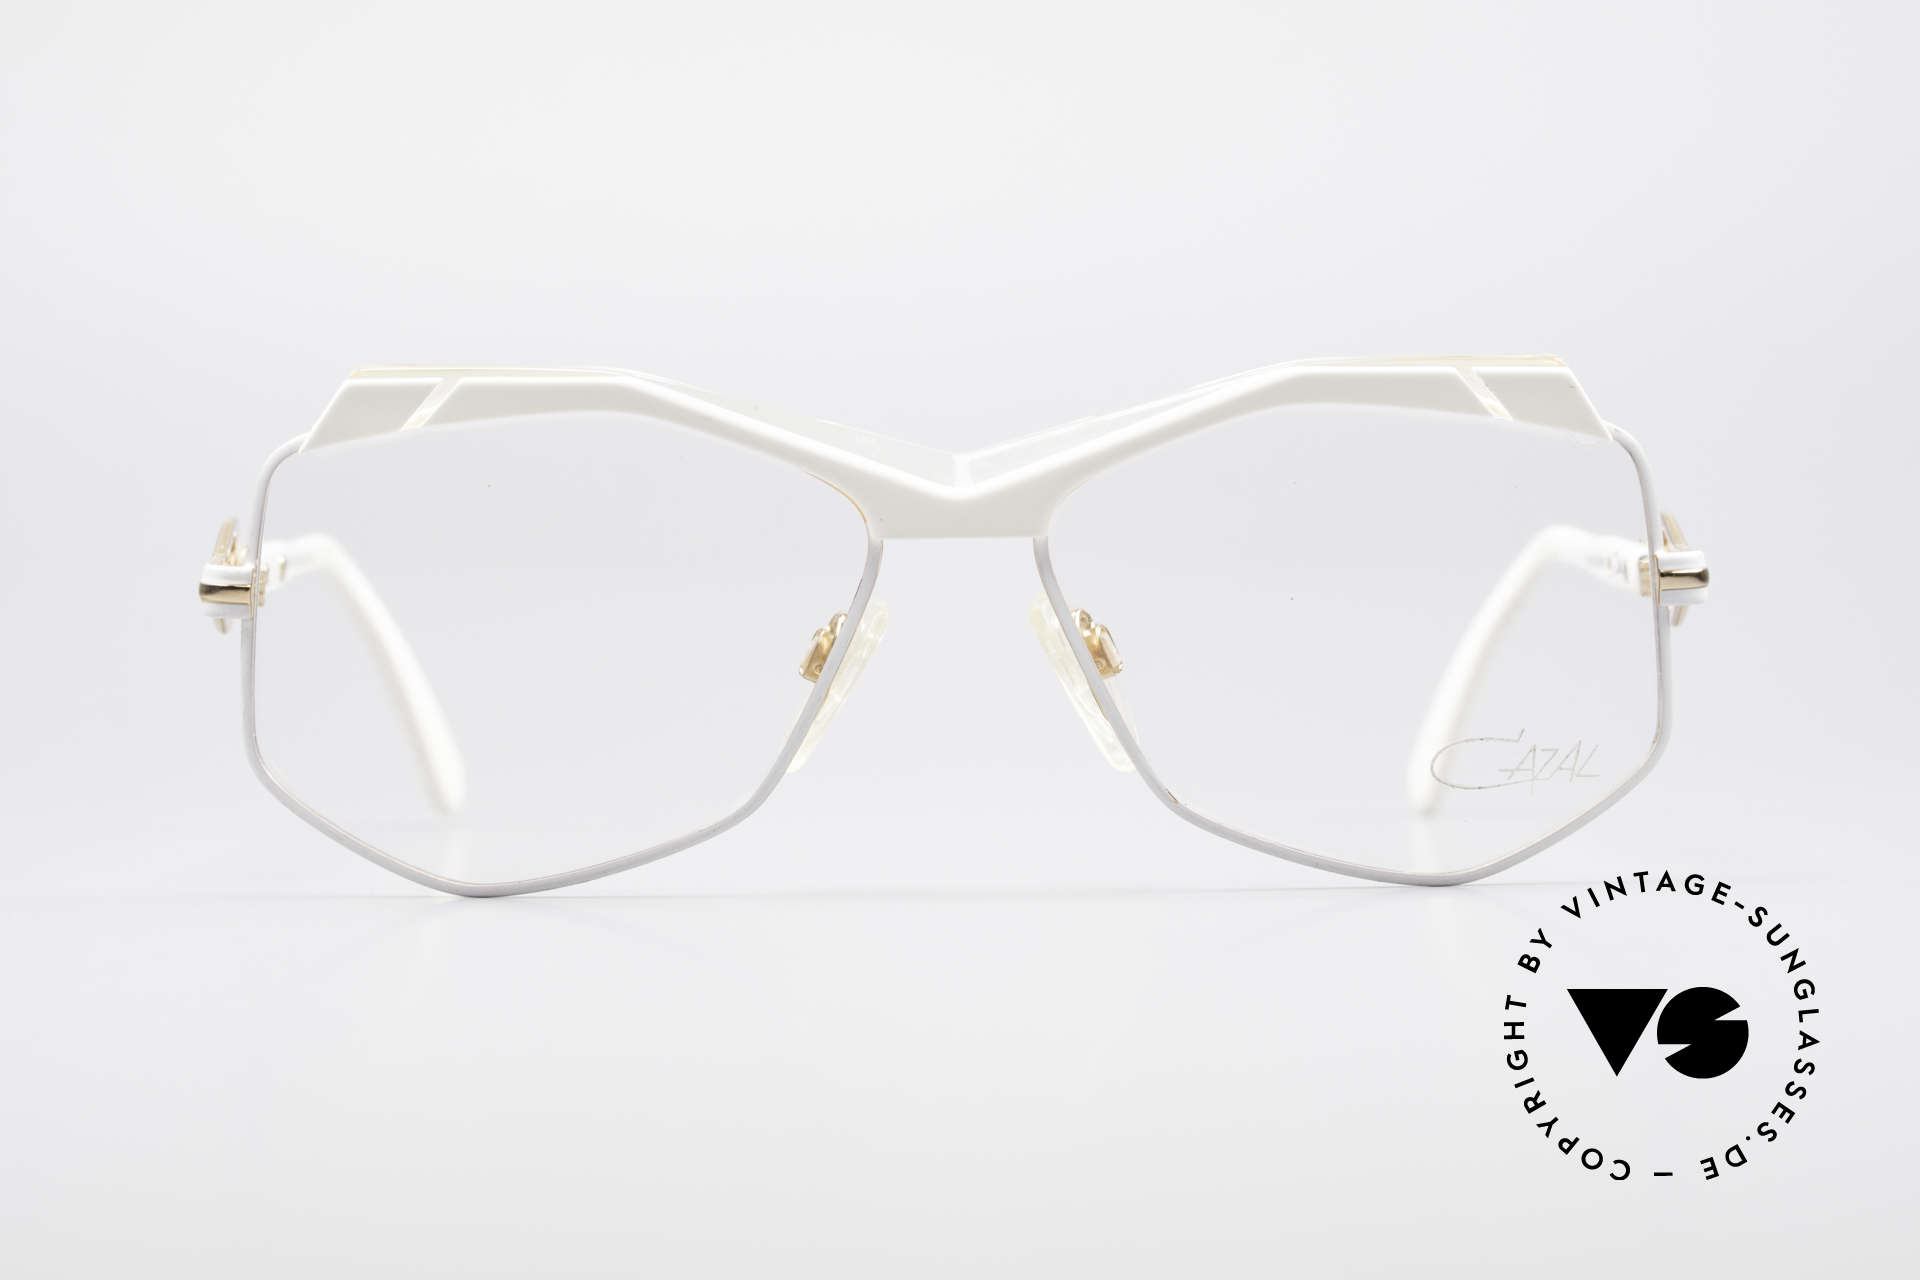 Cazal 230 80's Hip Hop Vintage Frame, extraordinary, hexagonal lenses - true vintage!, Made for Women